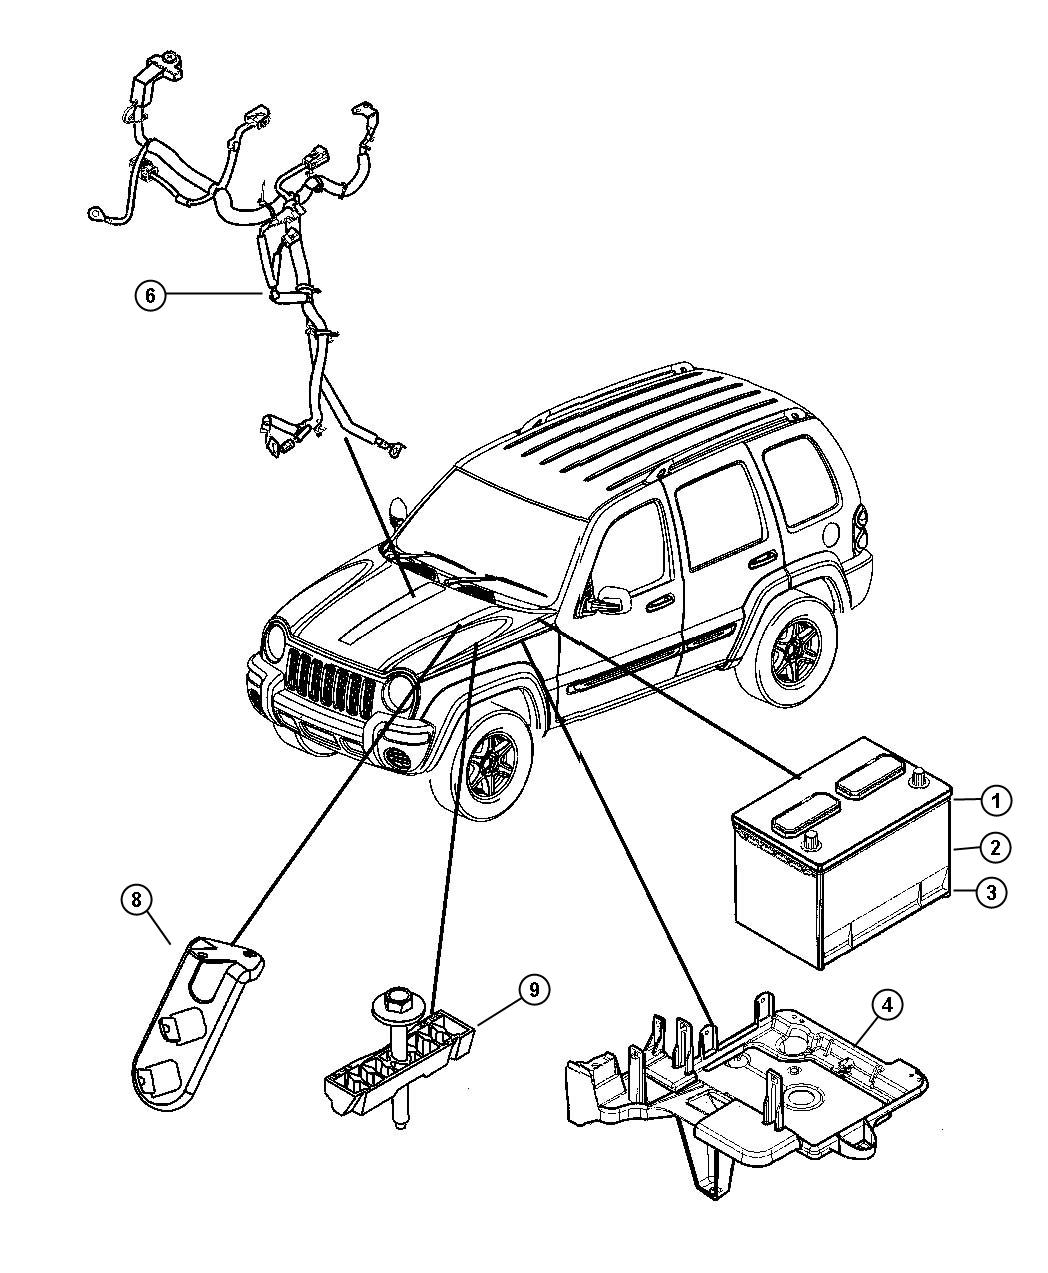 Jeep Liberty Alternator Wiring Jeep Free Engine Image For User Manual Download